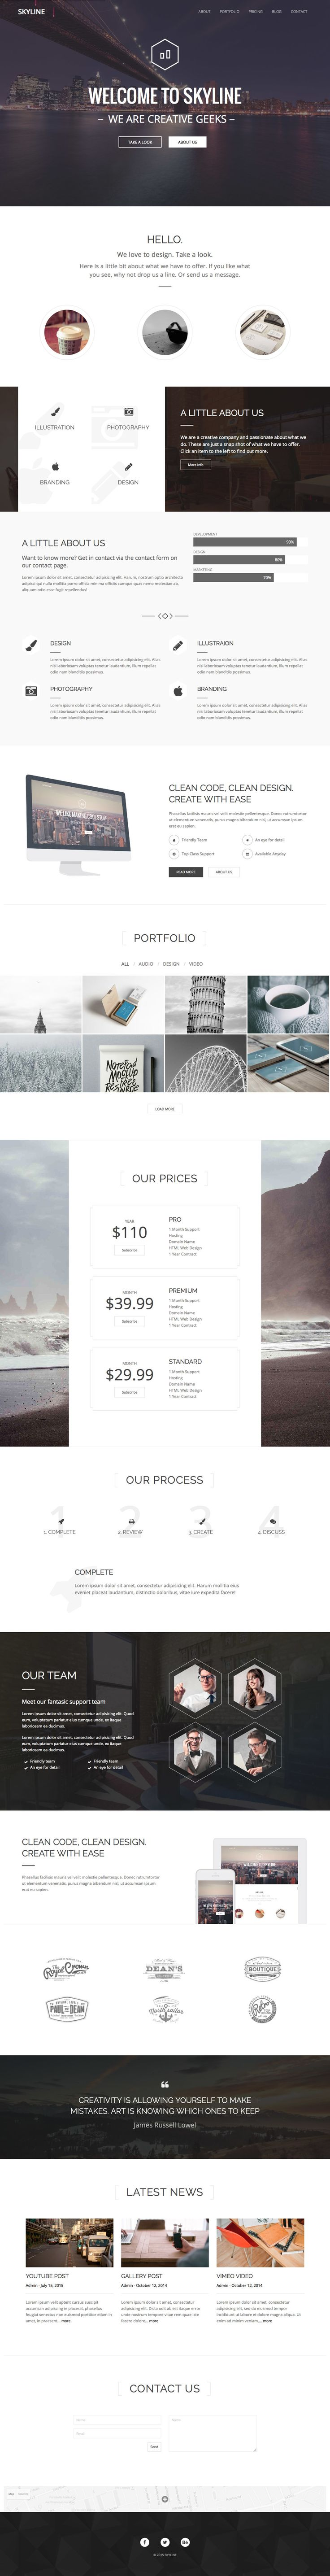 'Skyline' is a multi-page WordPress theme with a One Page layout option for a…